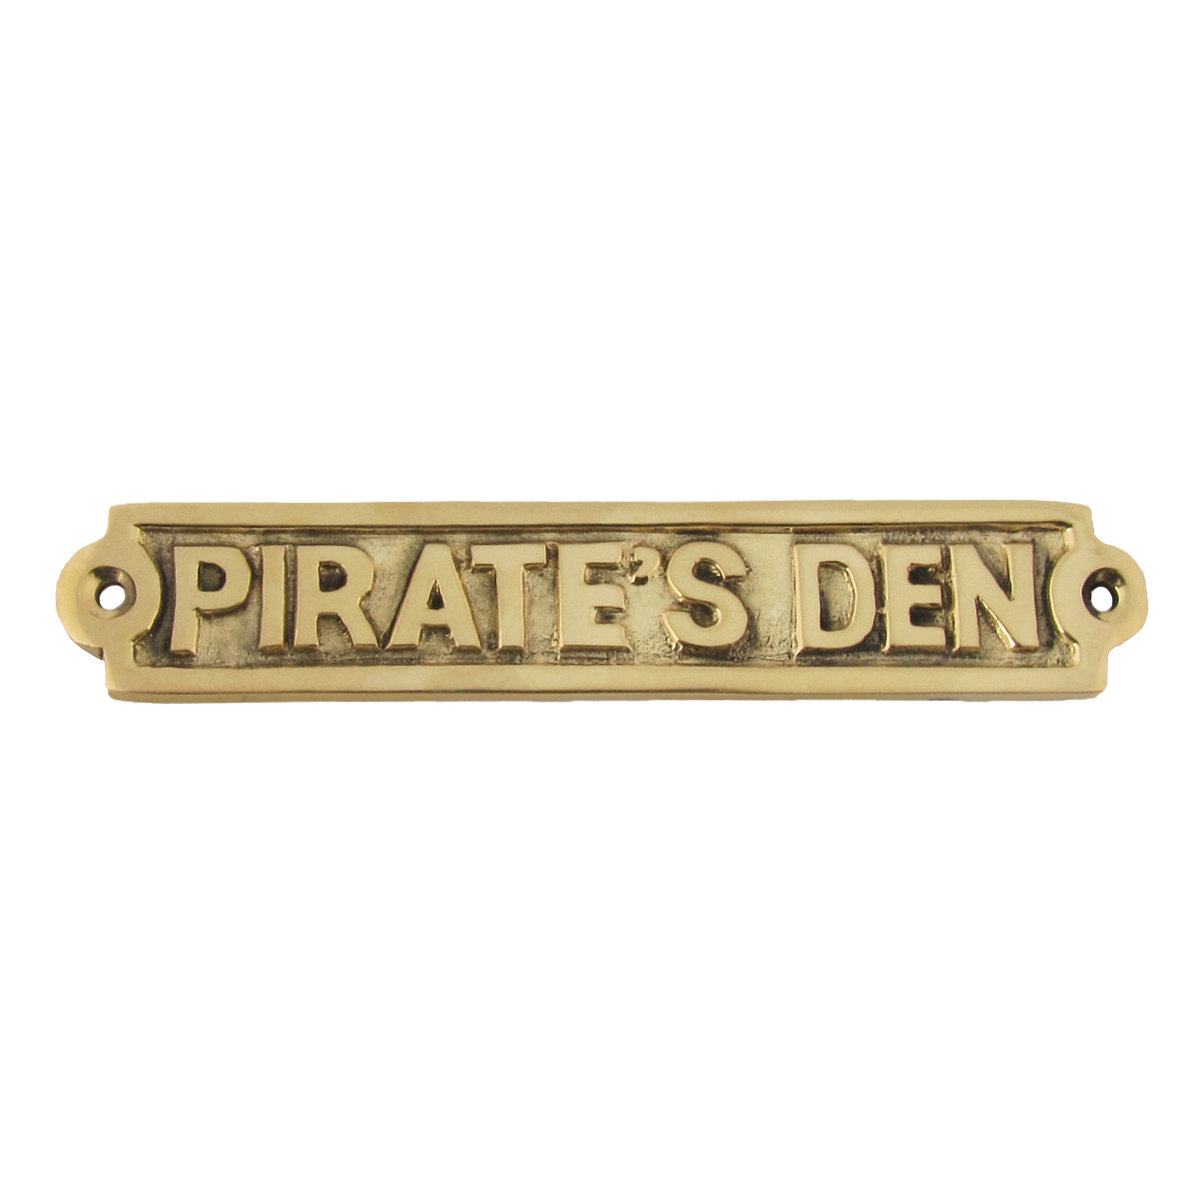 Pirates Den Plaque 28RSRTKW5HMEA